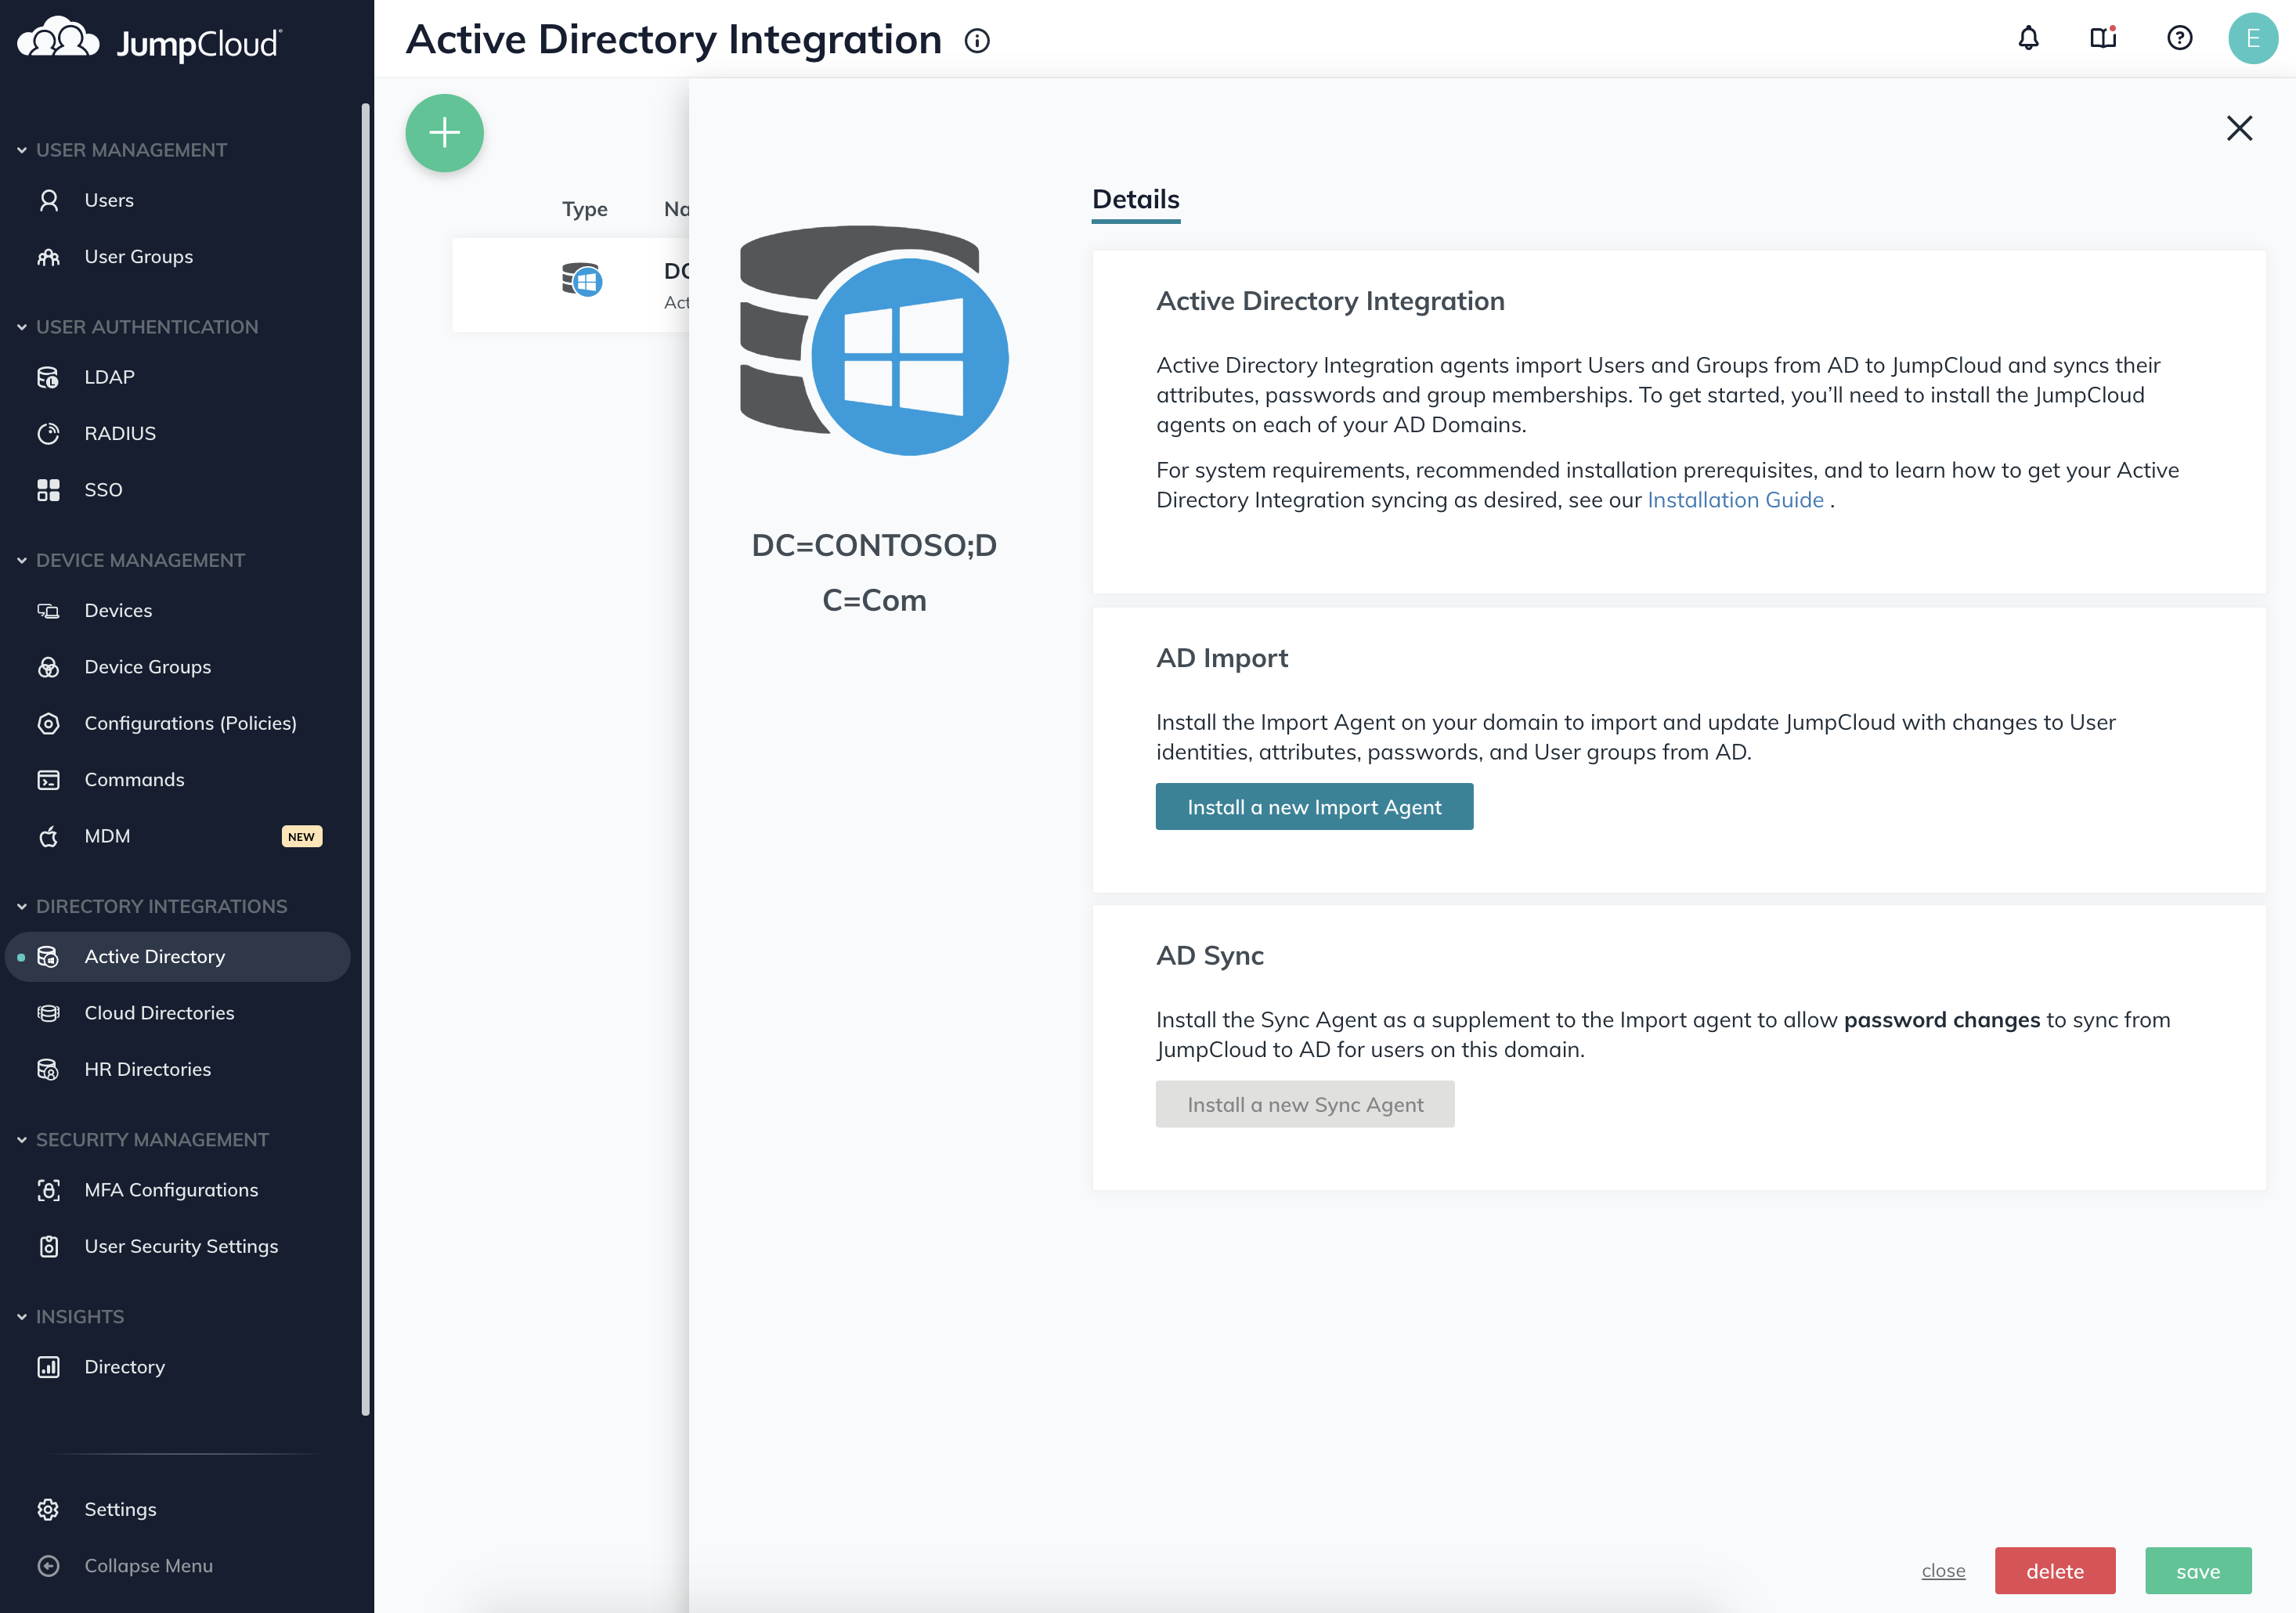 JumpCloud Directory-as-a-Service Azure Active Directory integration